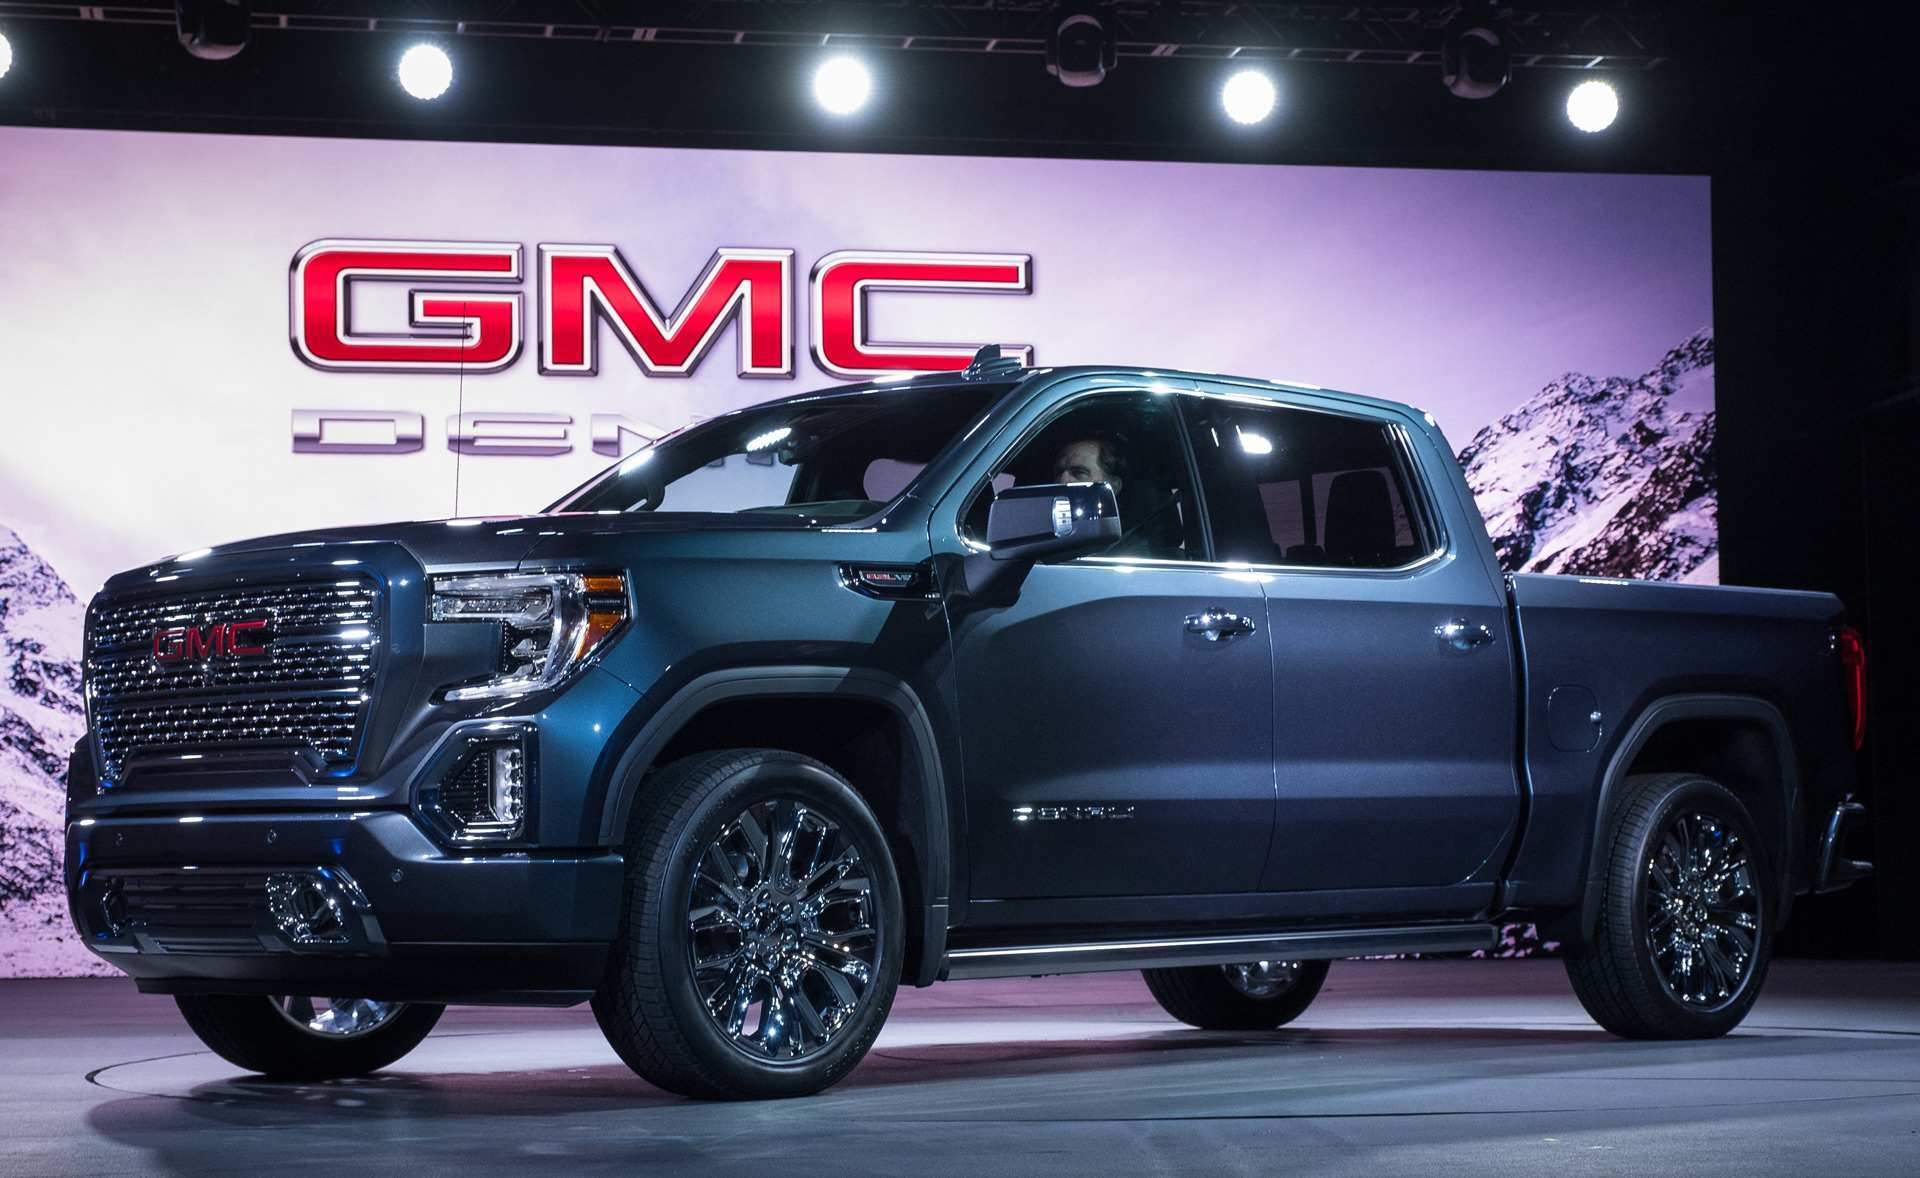 30 New 2020 Gmc Sierra Denali 1500 Hd Redesign